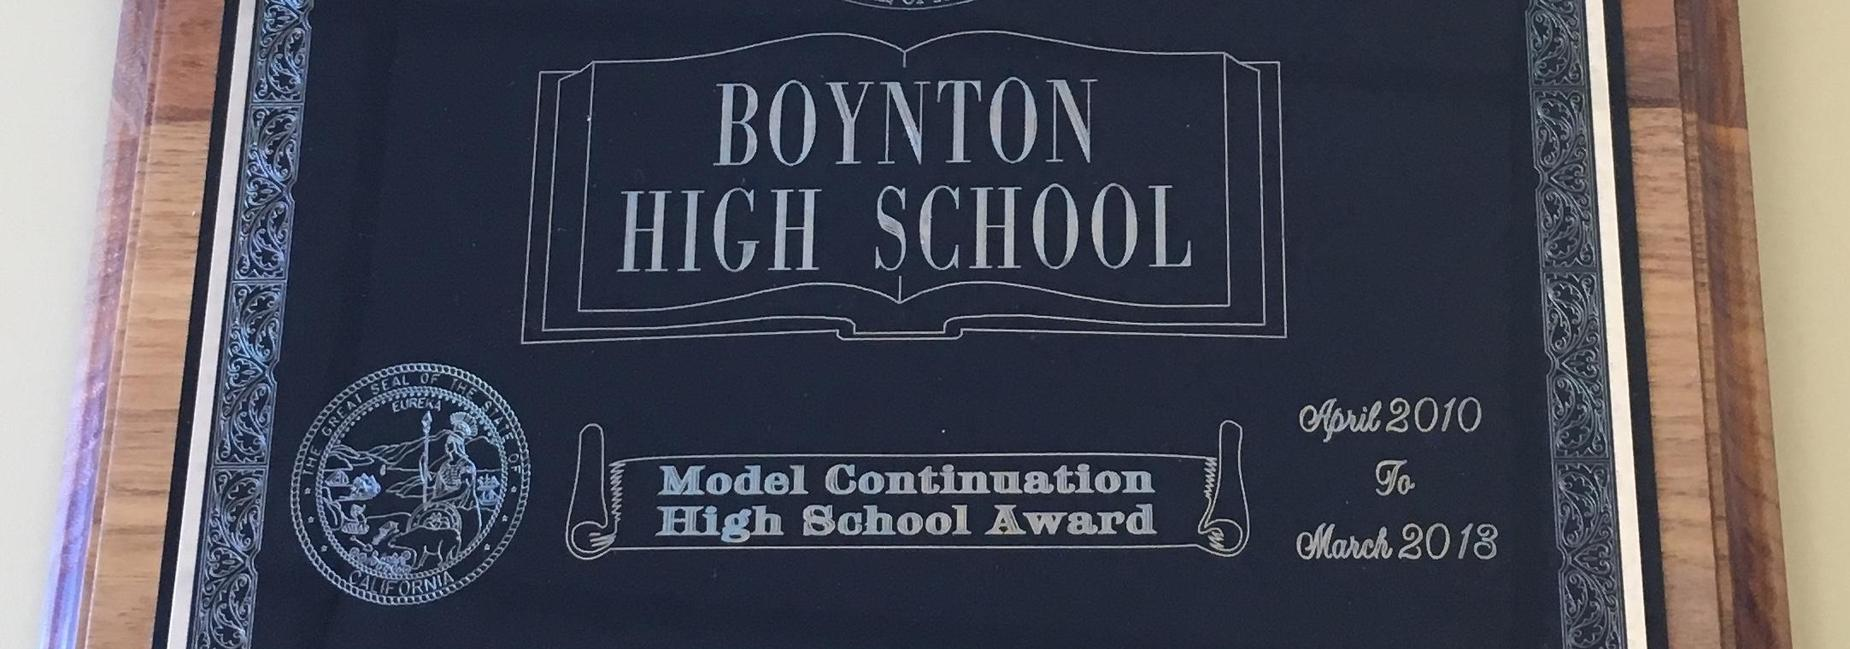 Boynton's Model Continuation Award